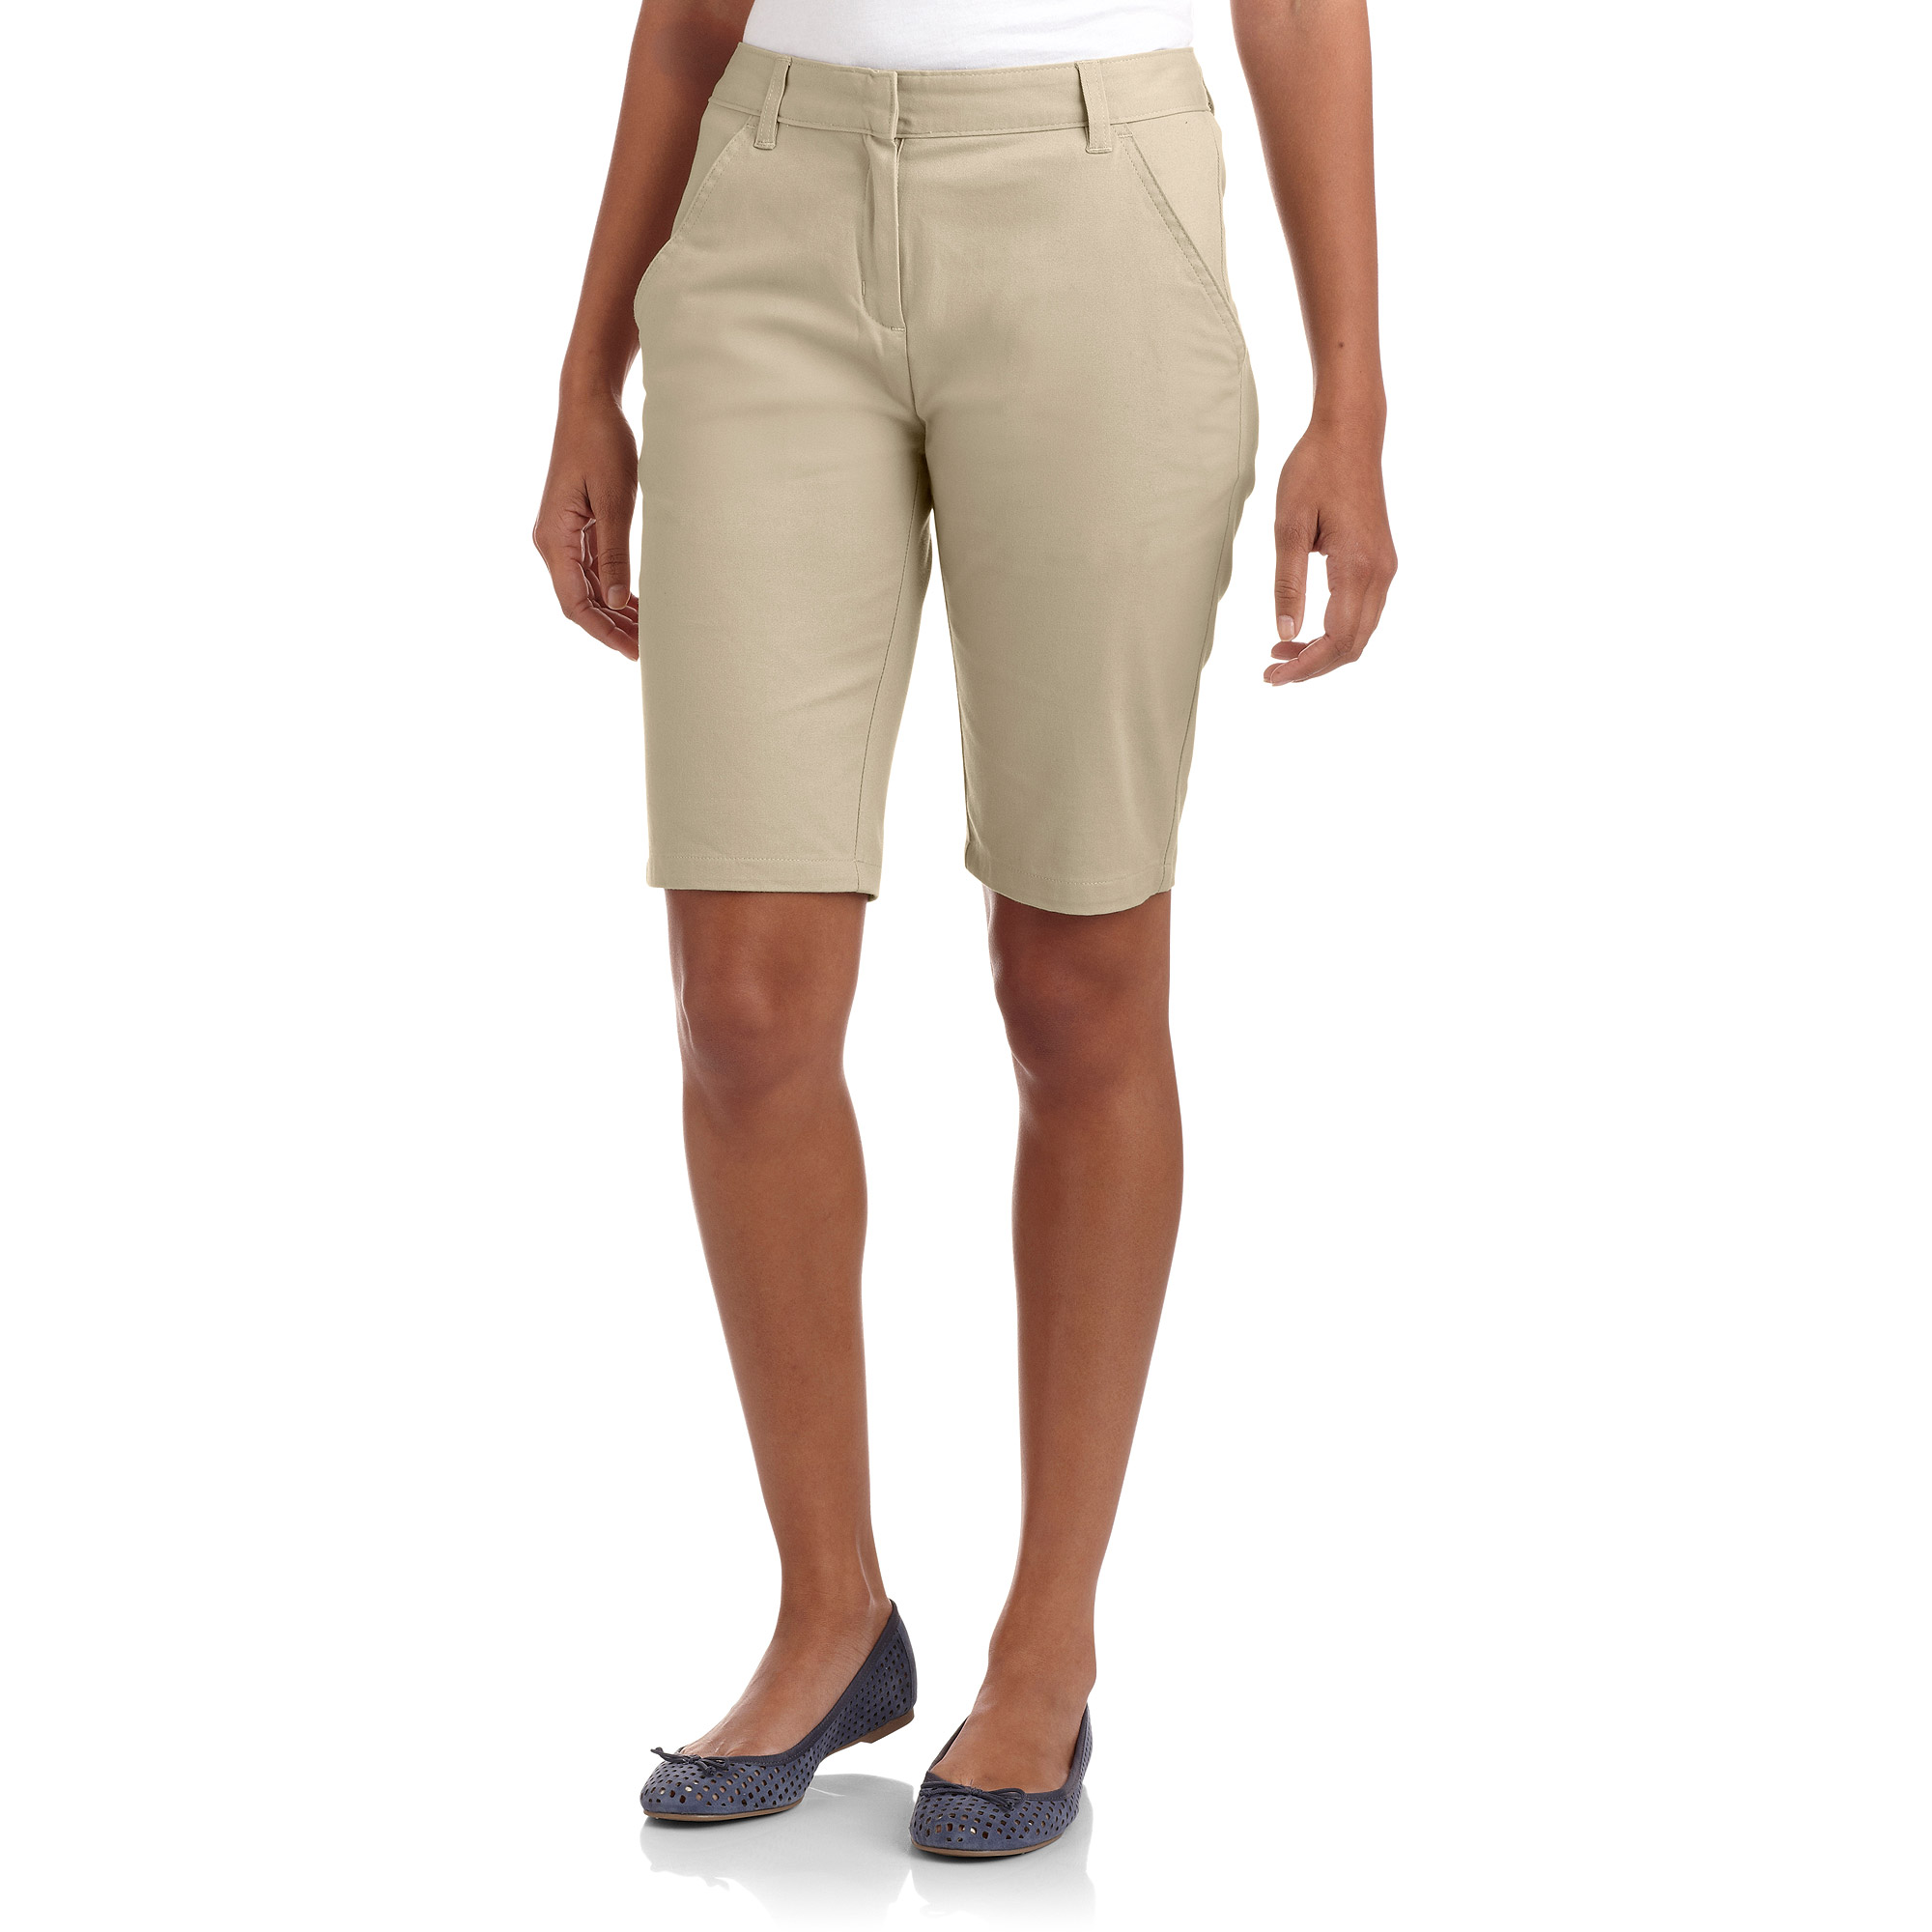 Looking for the best khaki bermuda shorts? Find this and many other products in stock & ready to ship. Shop to win with Bealls Florida's competitive prices and deals.